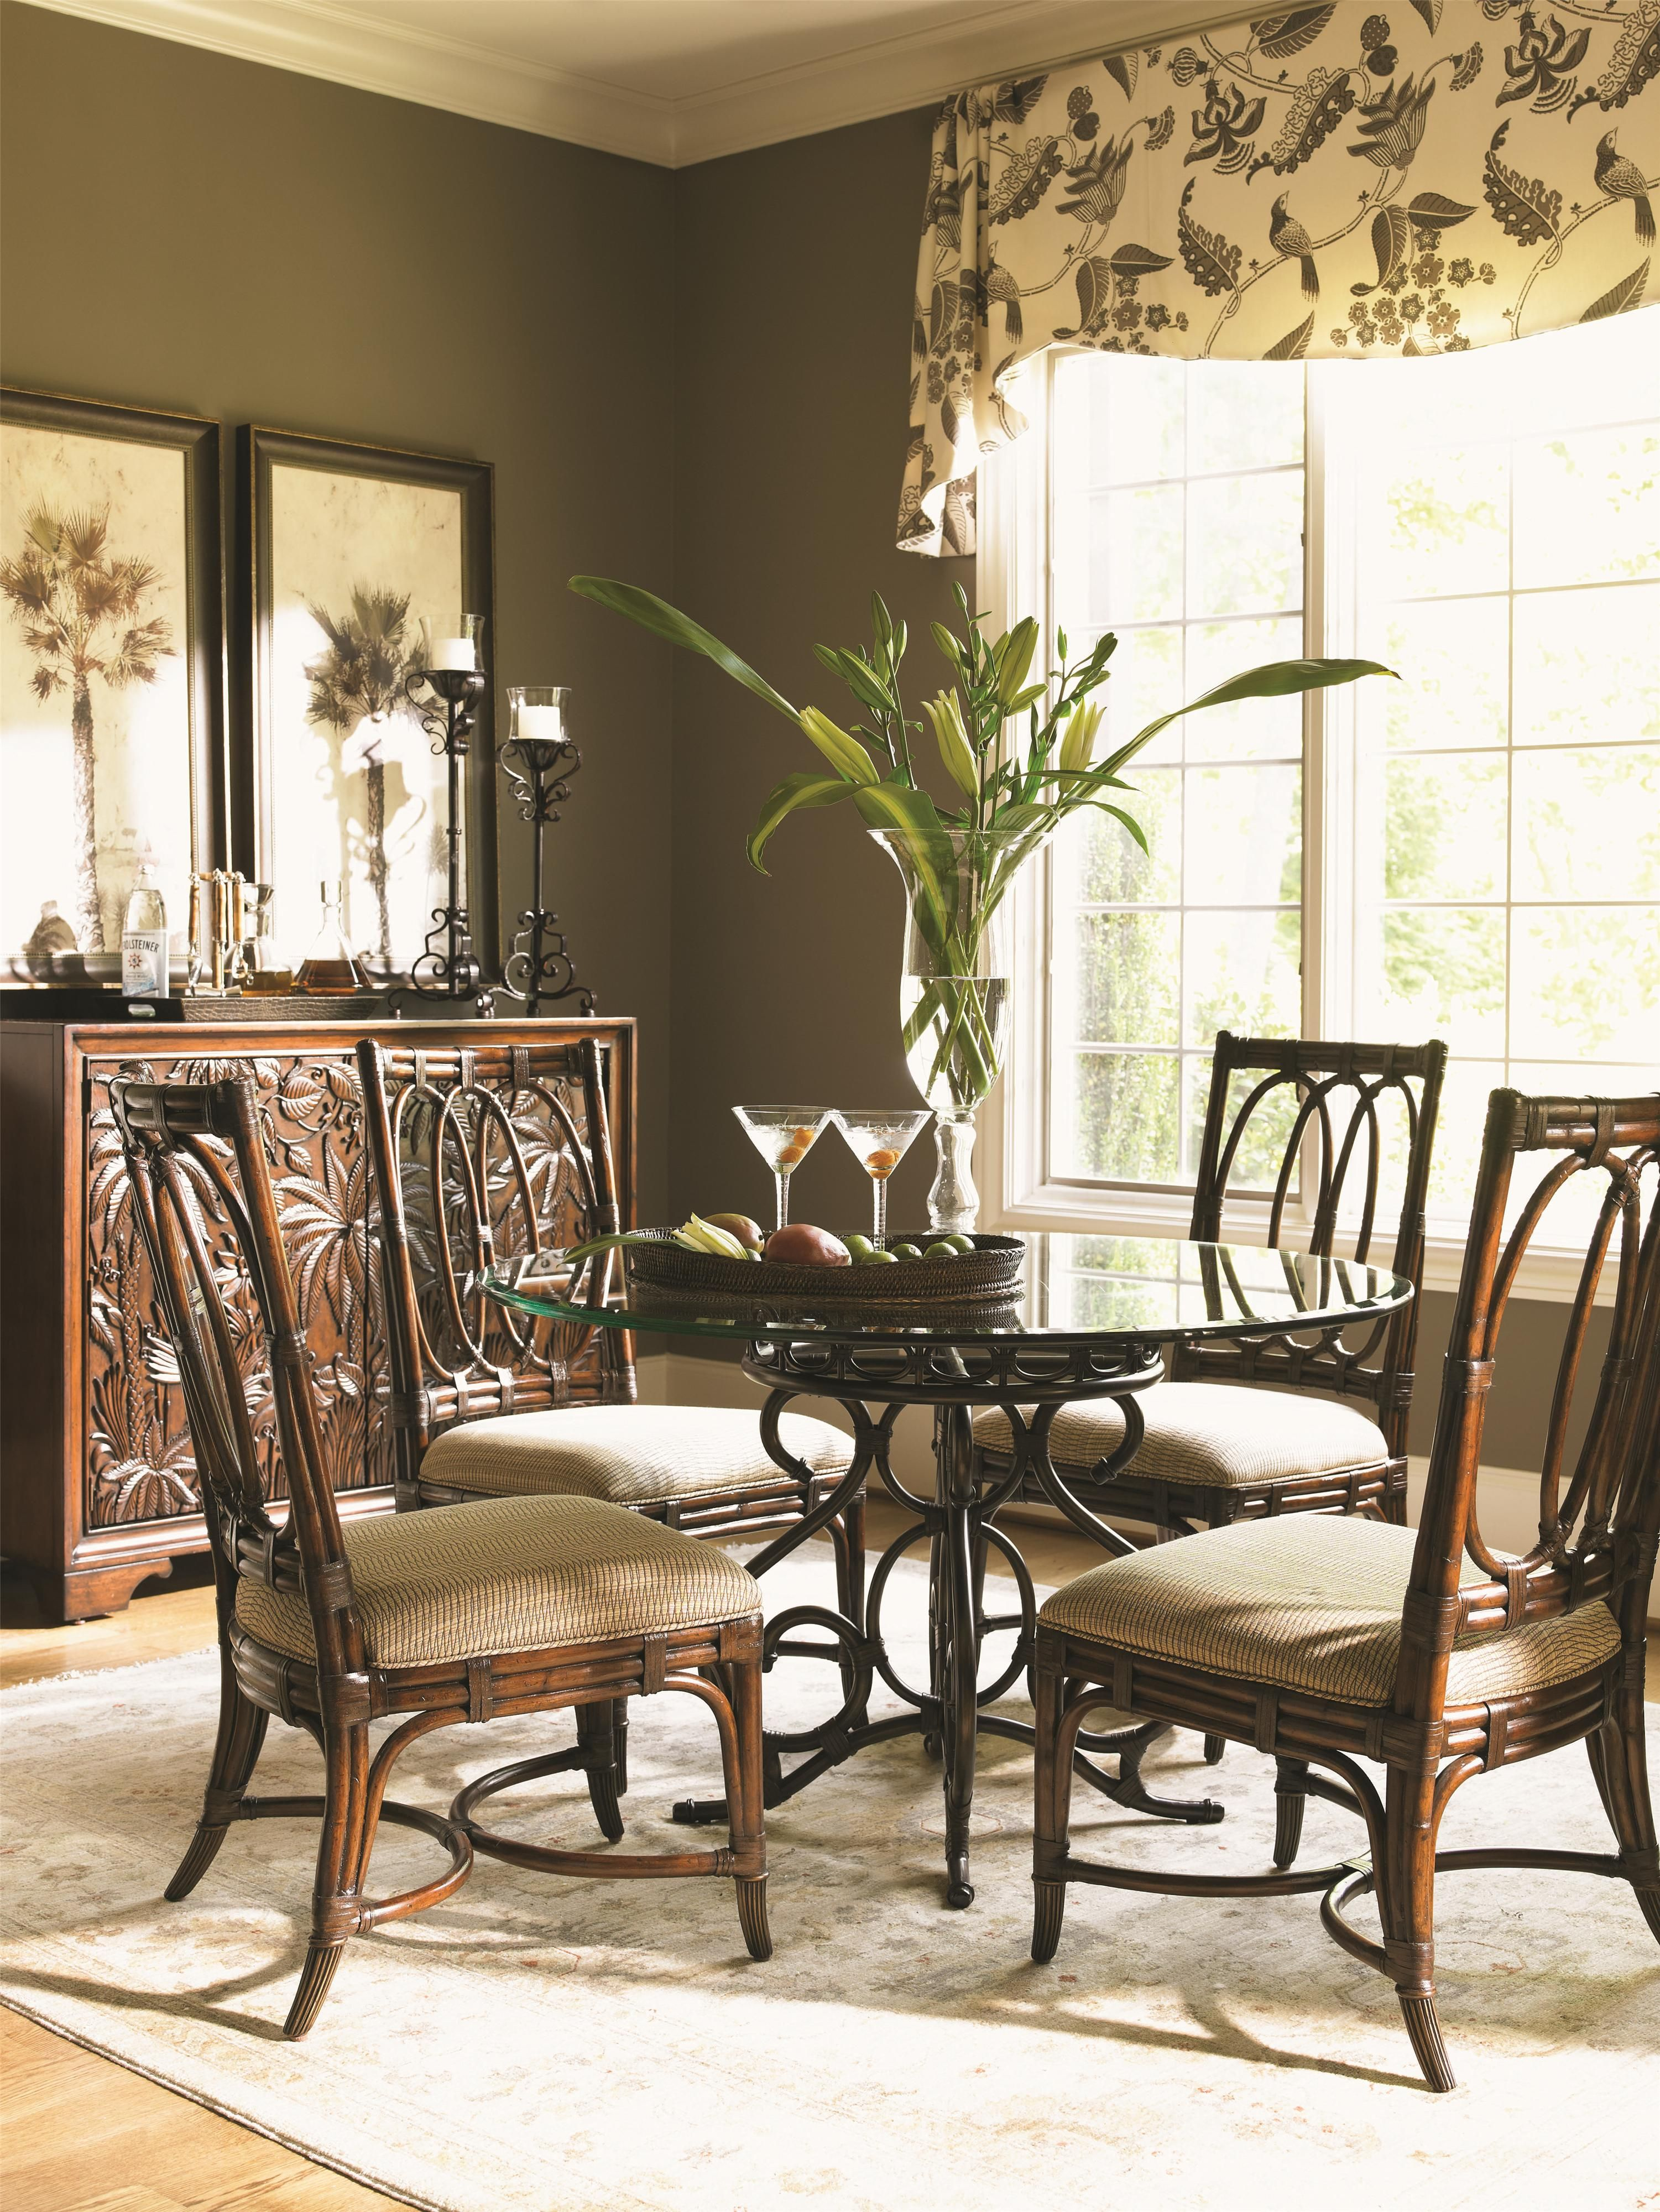 Festive fall table settings tommy bahama home kingstown pembroke tommy bahama home kingstown pembroke dining table elegant table settings and decor pinterest fall table settings fall tabl arubaitofo Choice Image